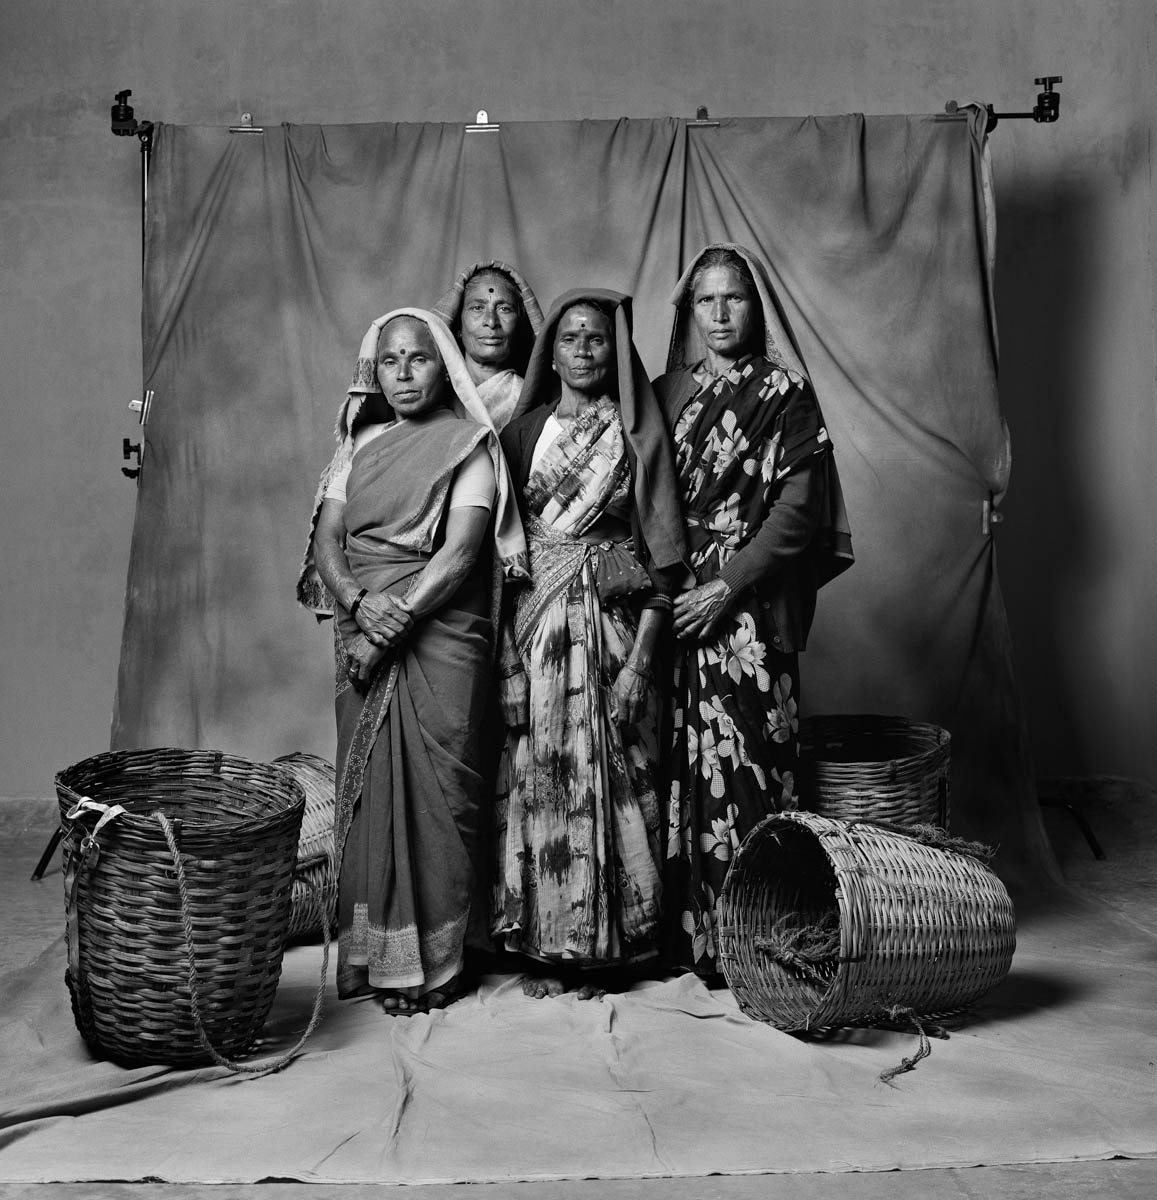 Group Portraits of Indian Women